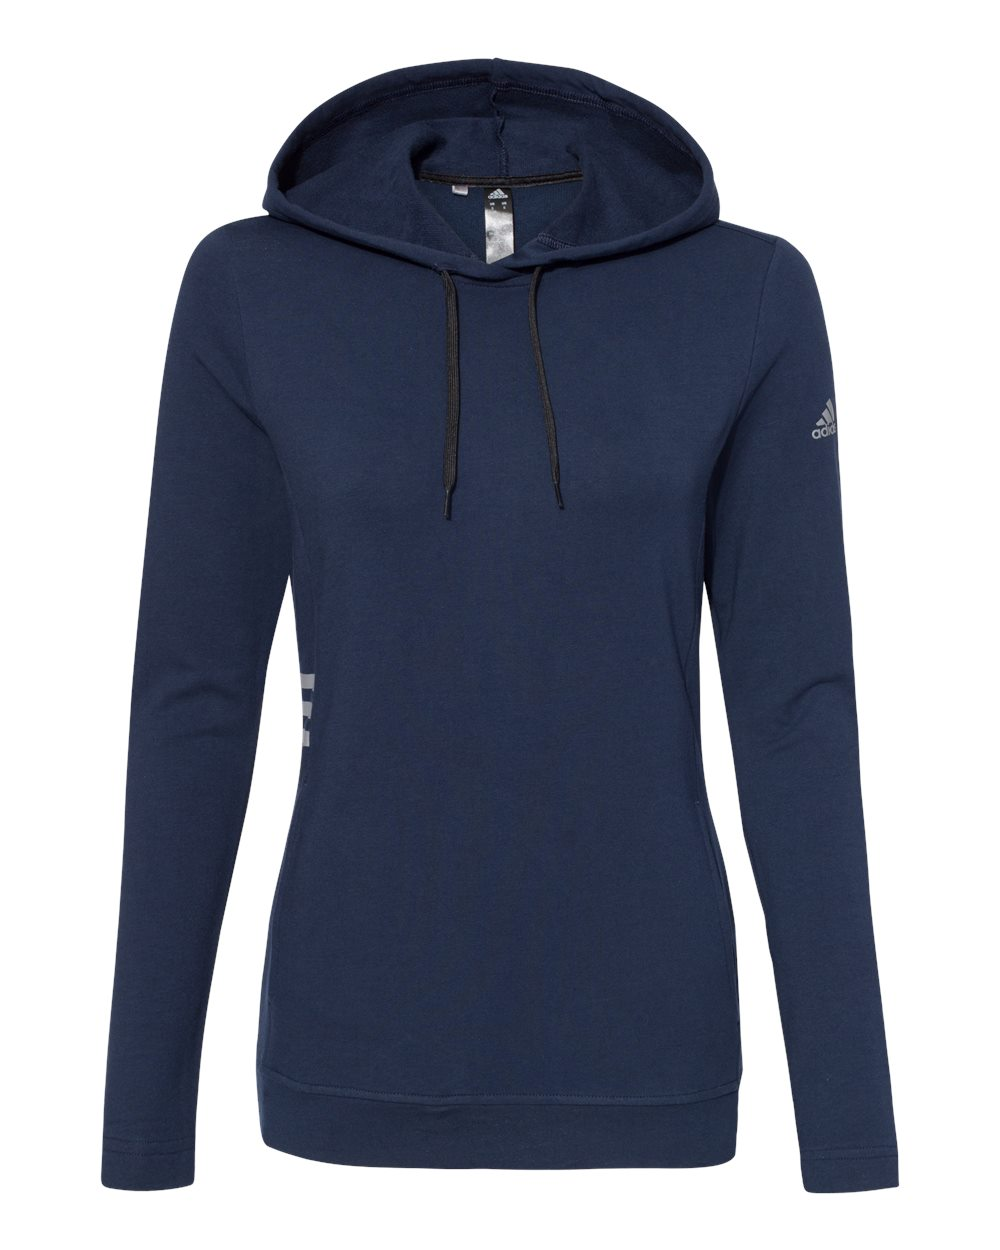 Adidas A451 - Women's Lightweight Hooded Sweatshirt